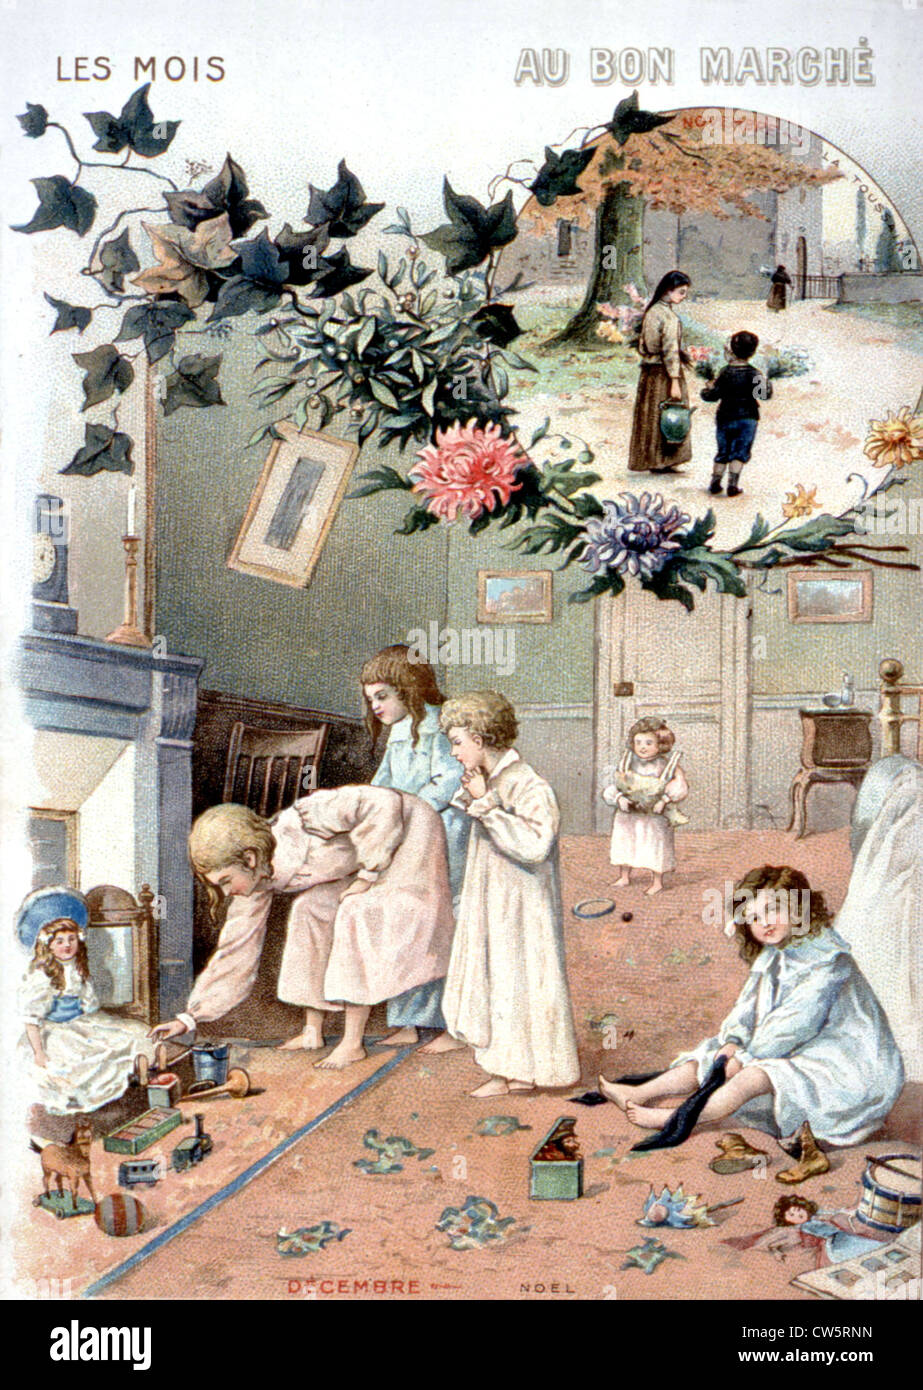 Advertising chromolithograph published by the French department store 'Le Bon marché' - Stock Image